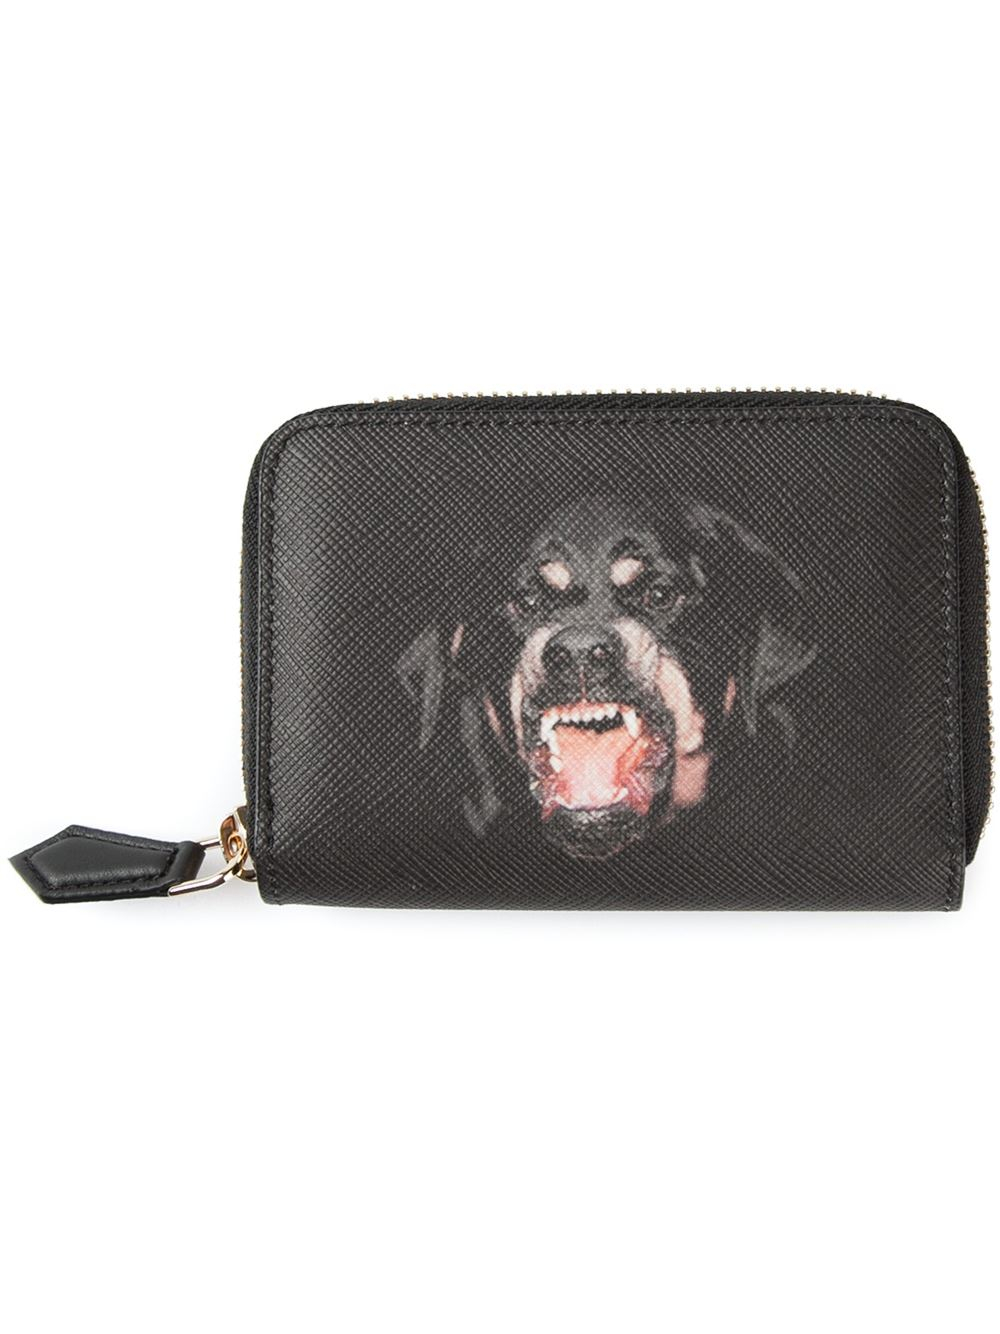 ee6399a69c Lyst - Givenchy Fierce Dog Wallet in Black